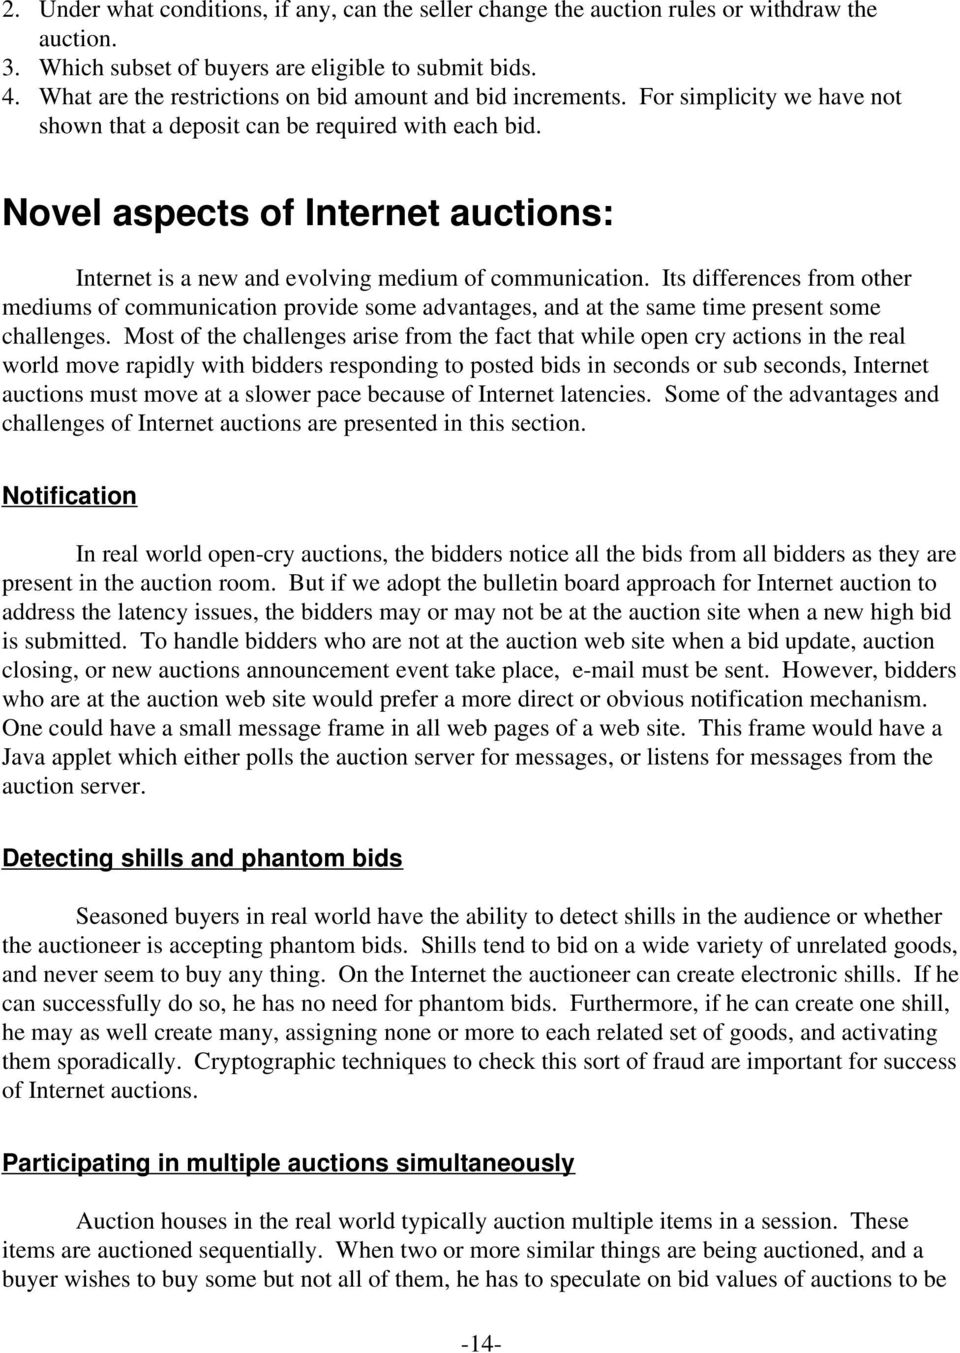 Novel aspects of Internet auctions: Internet is a new and evolving medium of communication.